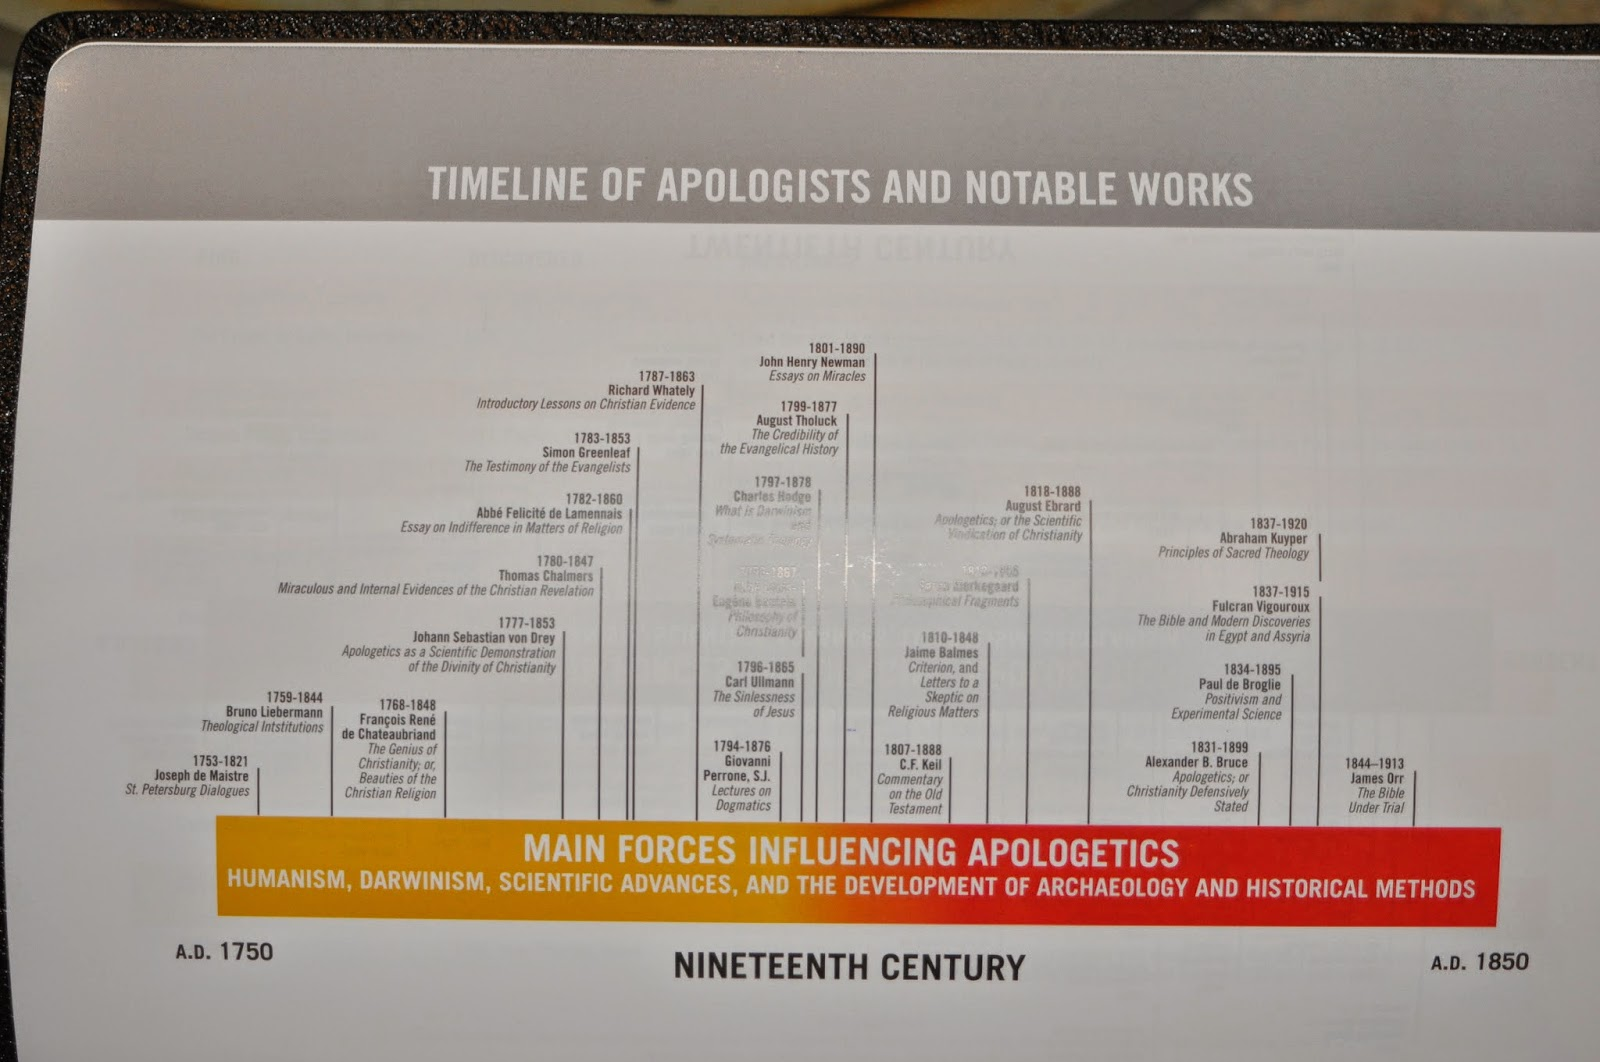 Apologetics Timeline